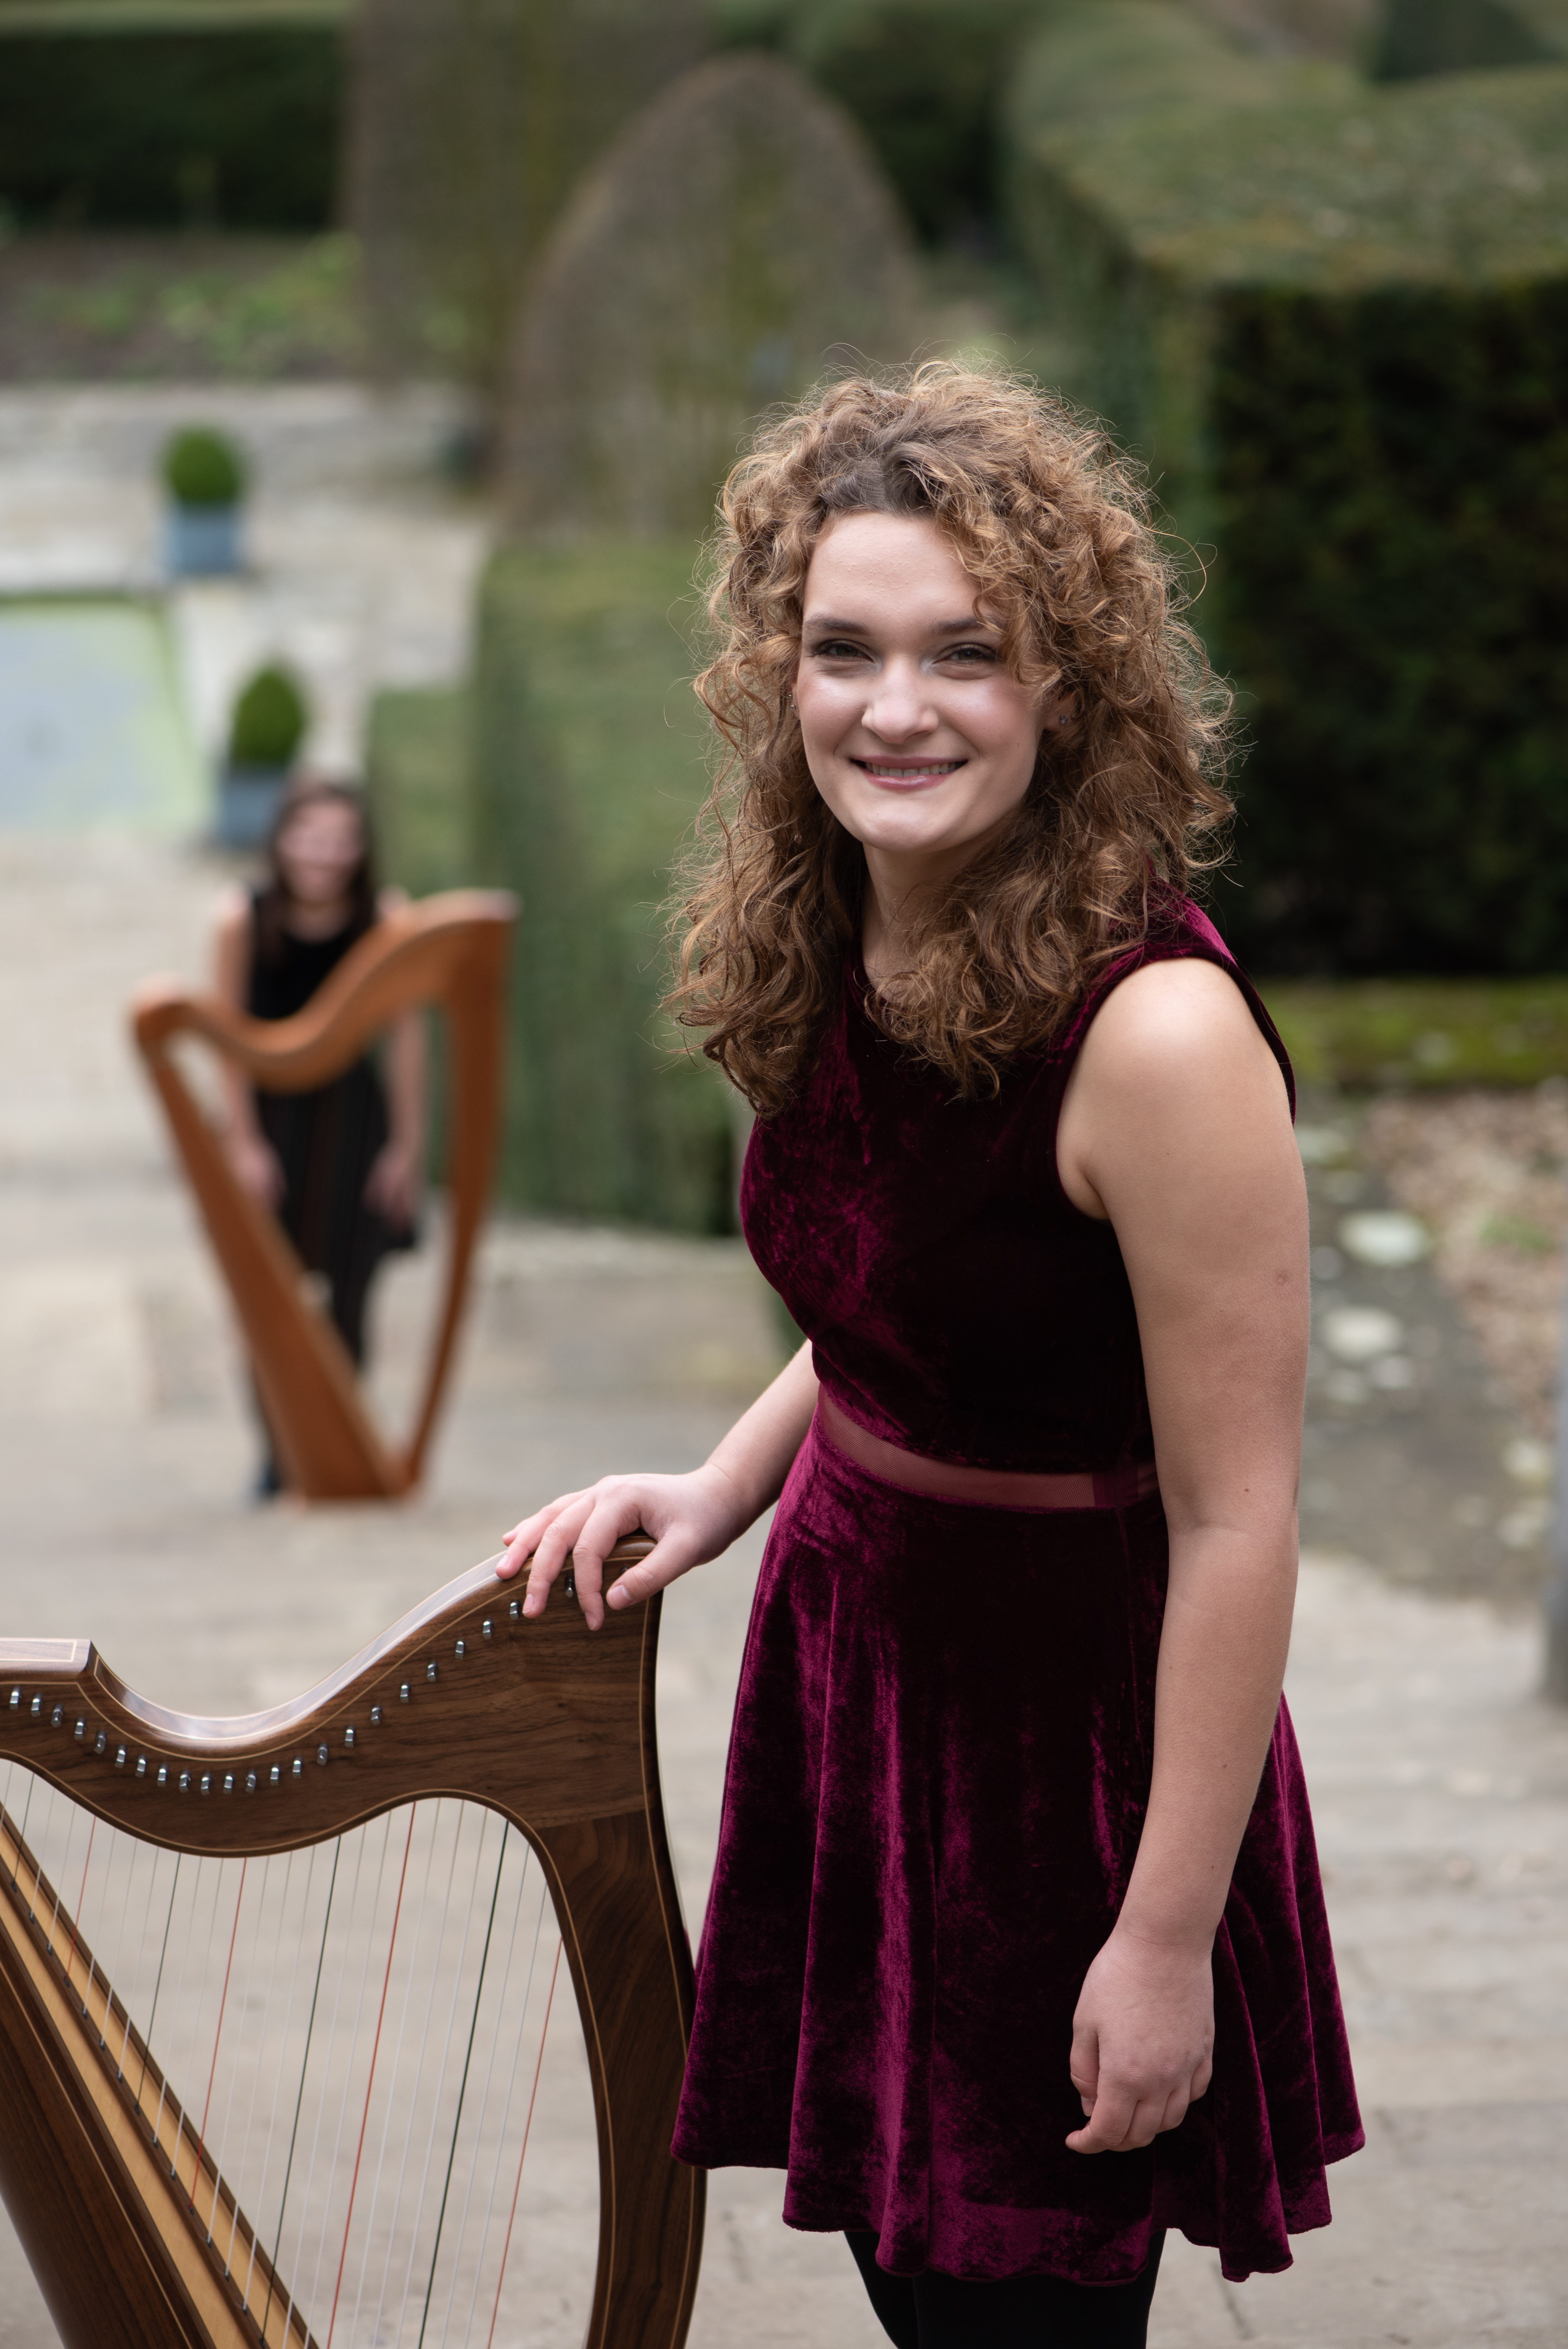 Karina, Harpist standing at the top of a staircase with Adel harpist in the background bl